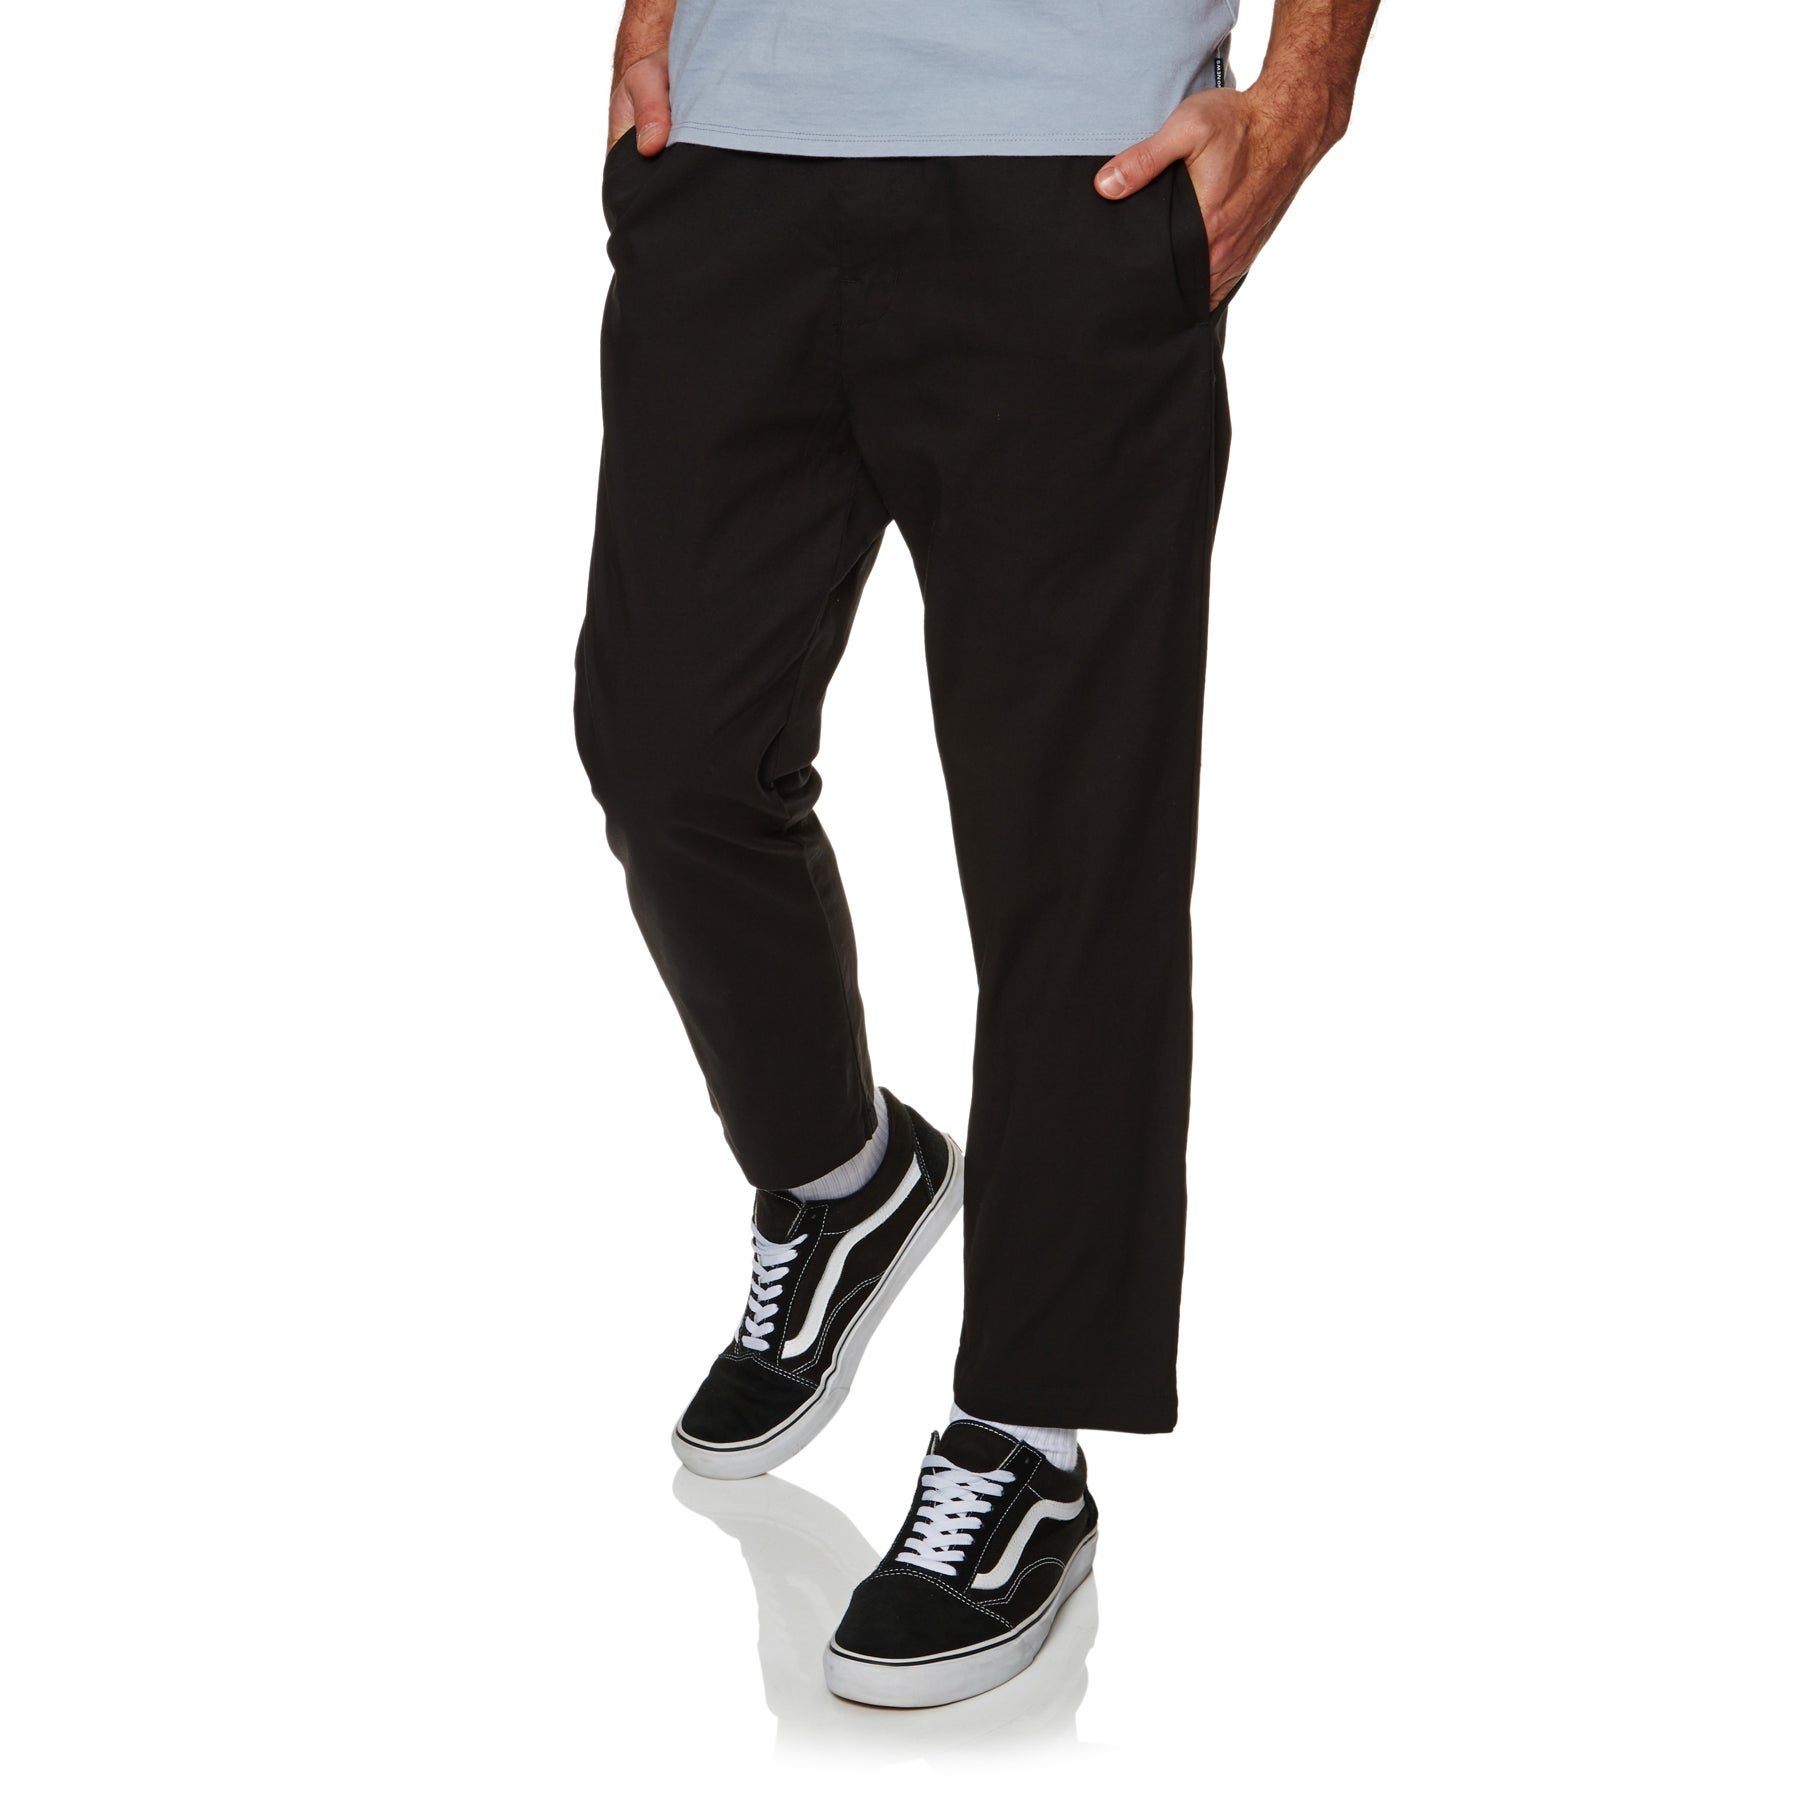 No News After Hours Chino Pant - Black